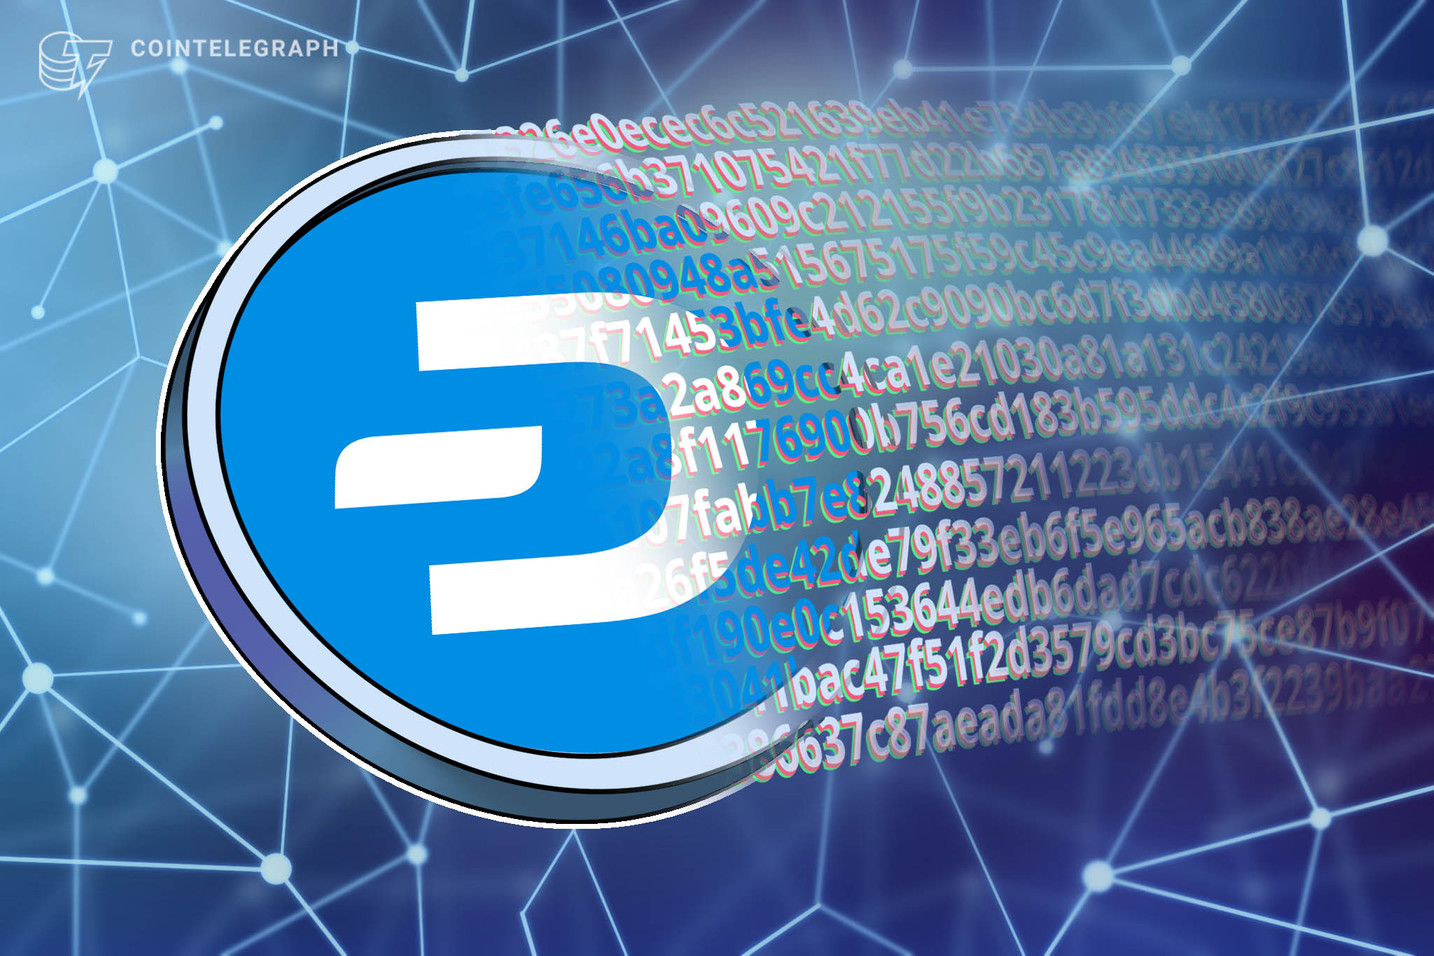 Following delisting, Dash pushes back against 'privacy coin' label